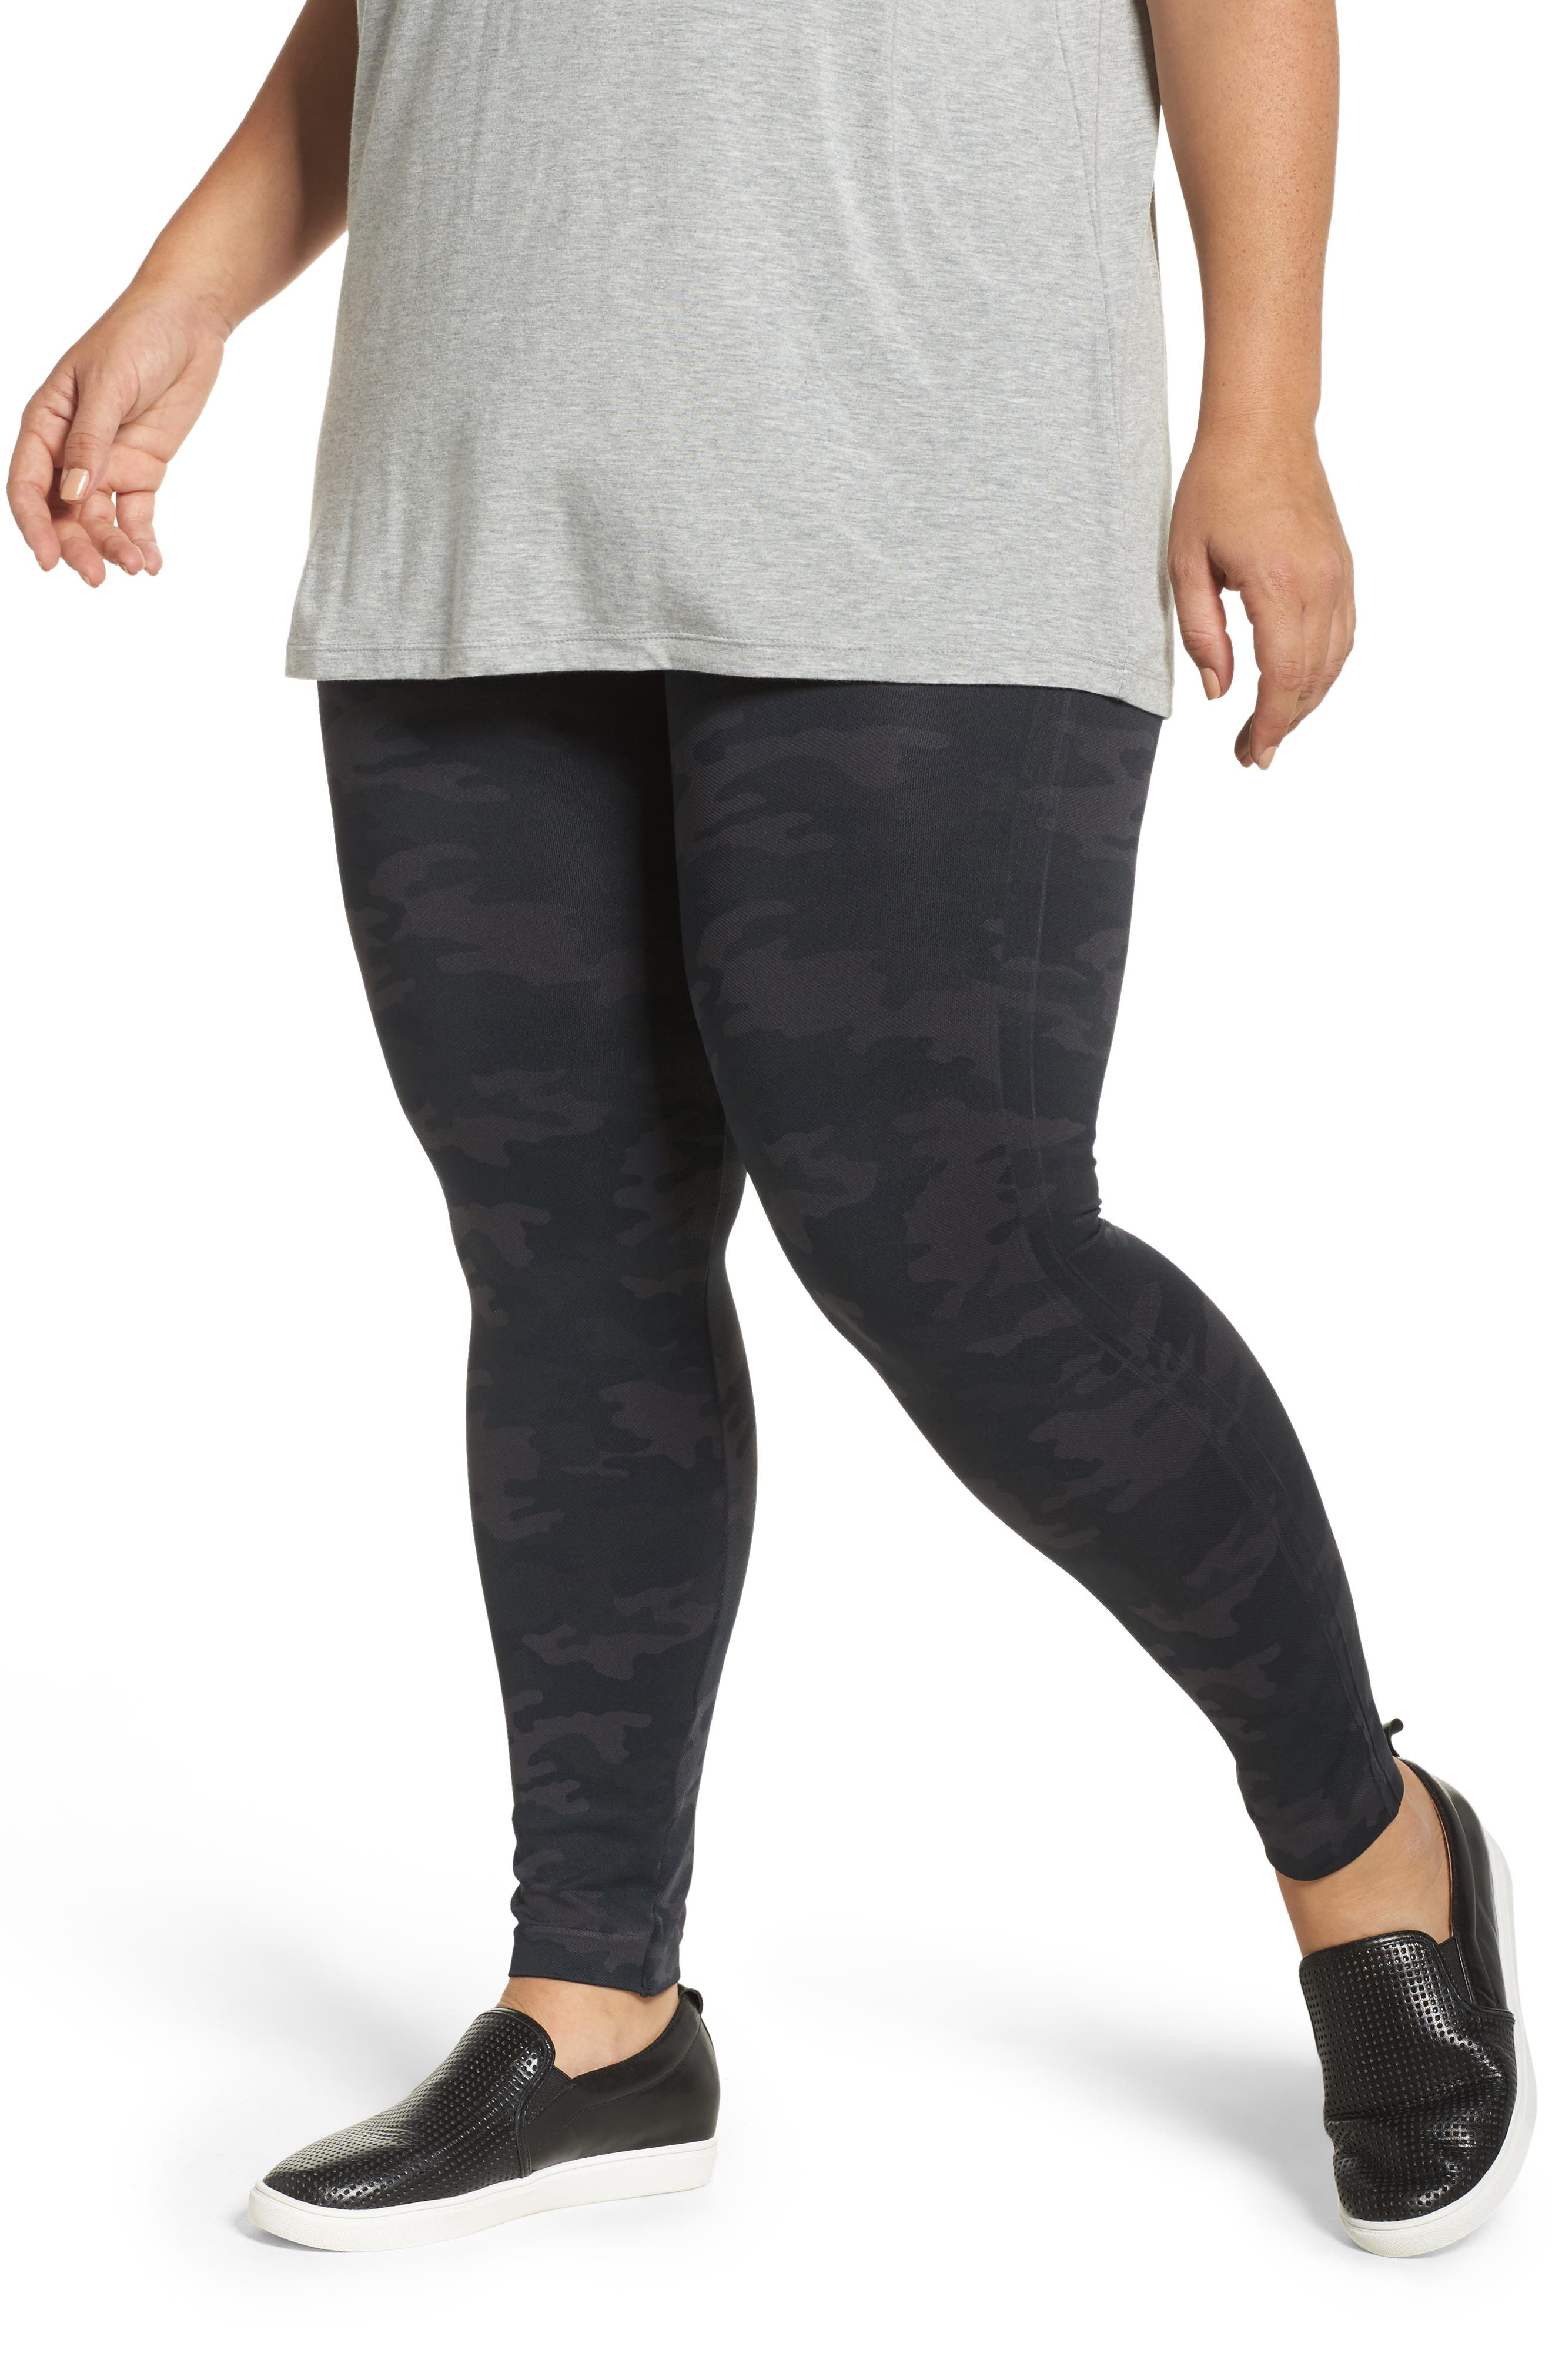 Look At Me Now Seamless Leggings,                         Main,                         color, 001